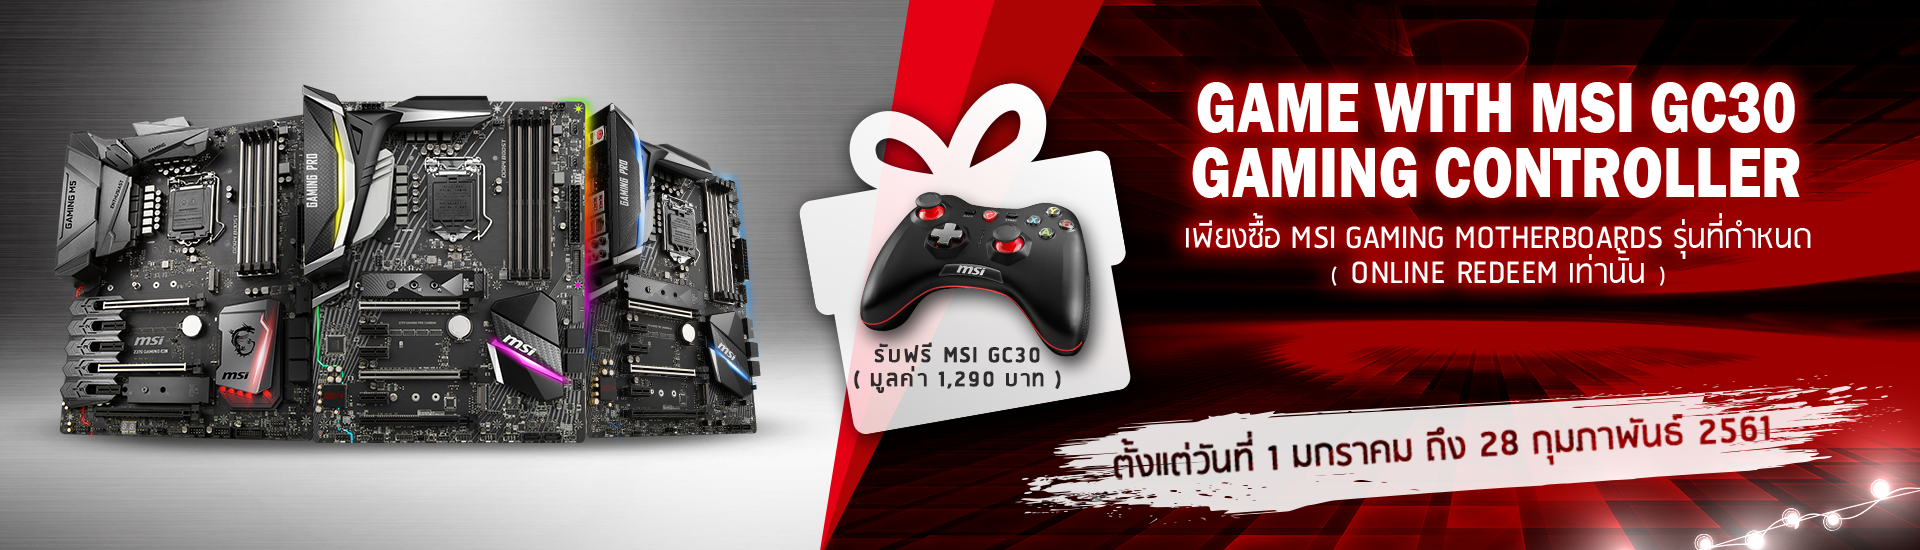 GAME WITH MSI GC30 GAMING Controller